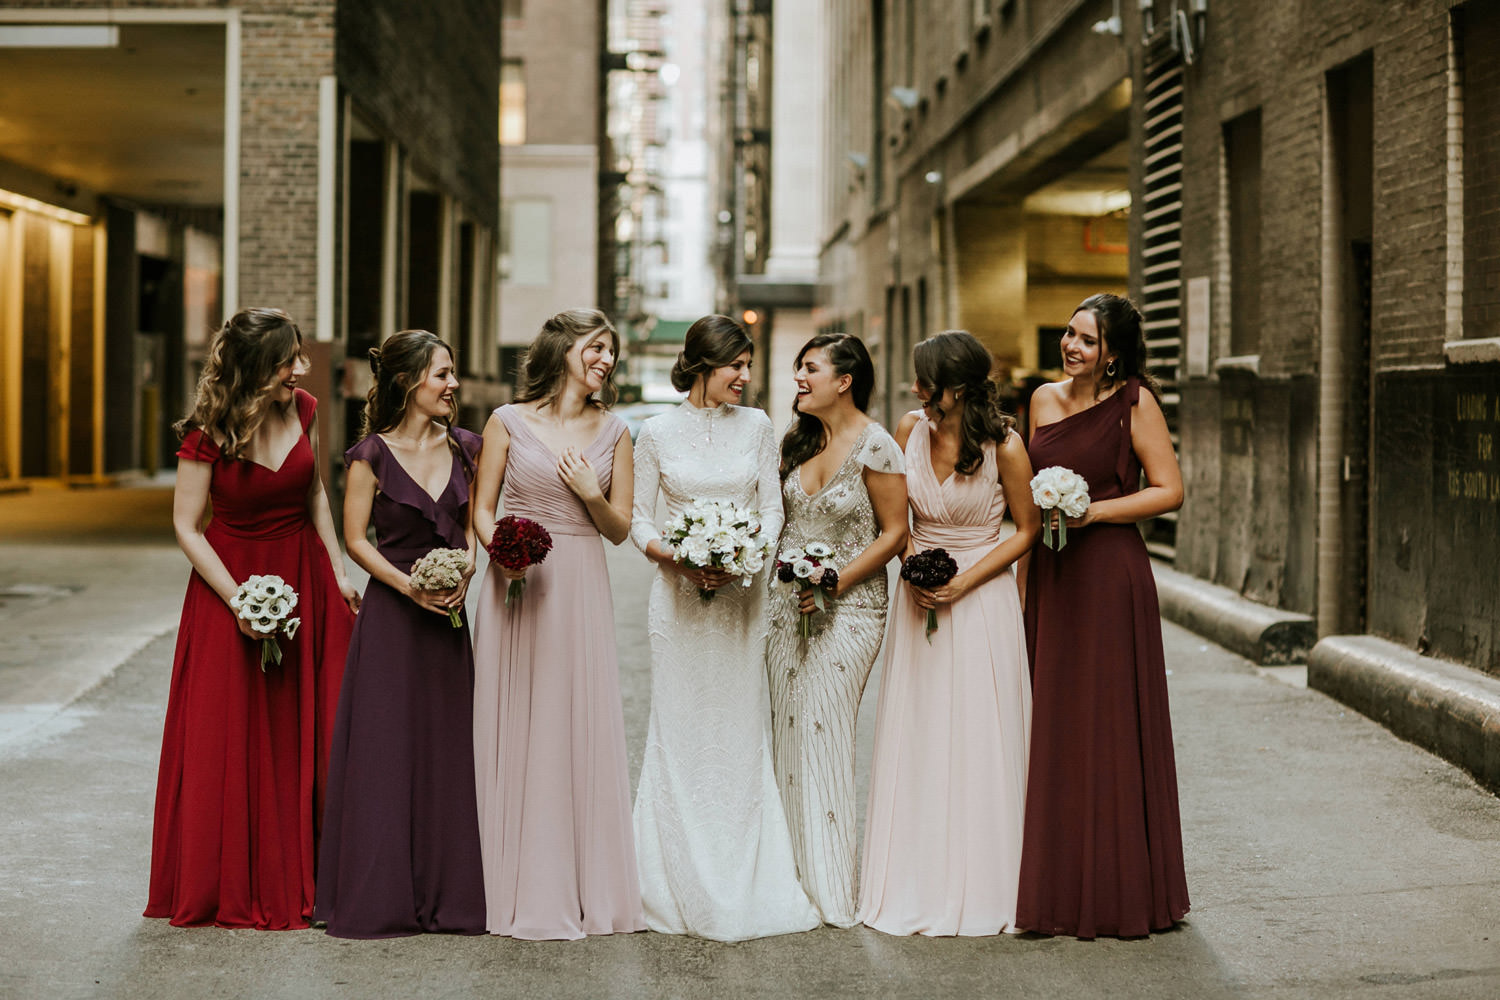 Picture of bride and bridesmaids, wearing colorful dresses, taken by Gray Hotel in Chicago